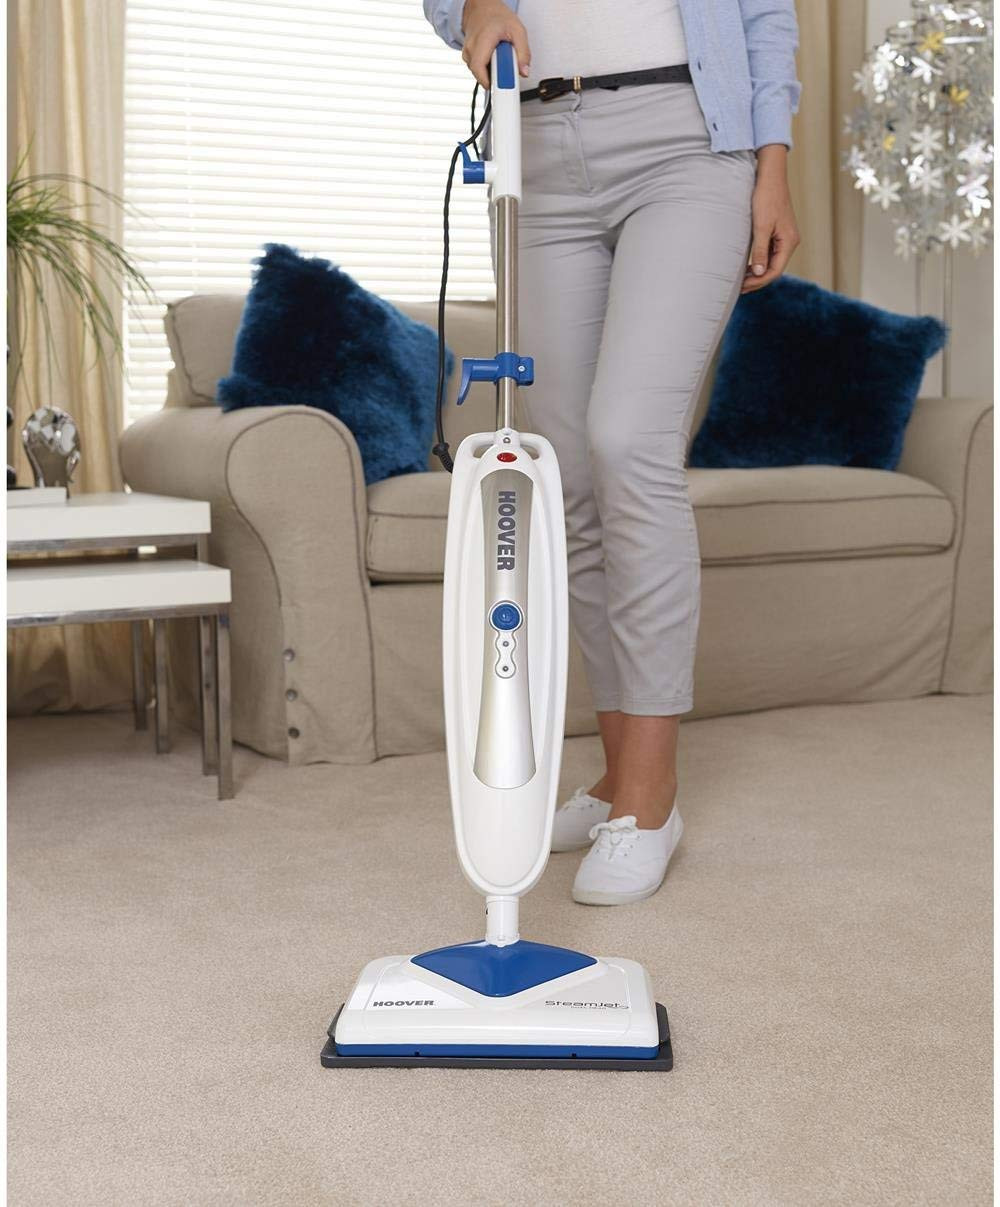 hardwood floor steam cleaner reviews of hoover steamjet dual head steam cleaner ssnba1700 amazon co uk with regard to hoover steamjet dual head steam cleaner ssnba1700 amazon co uk garden outdoors